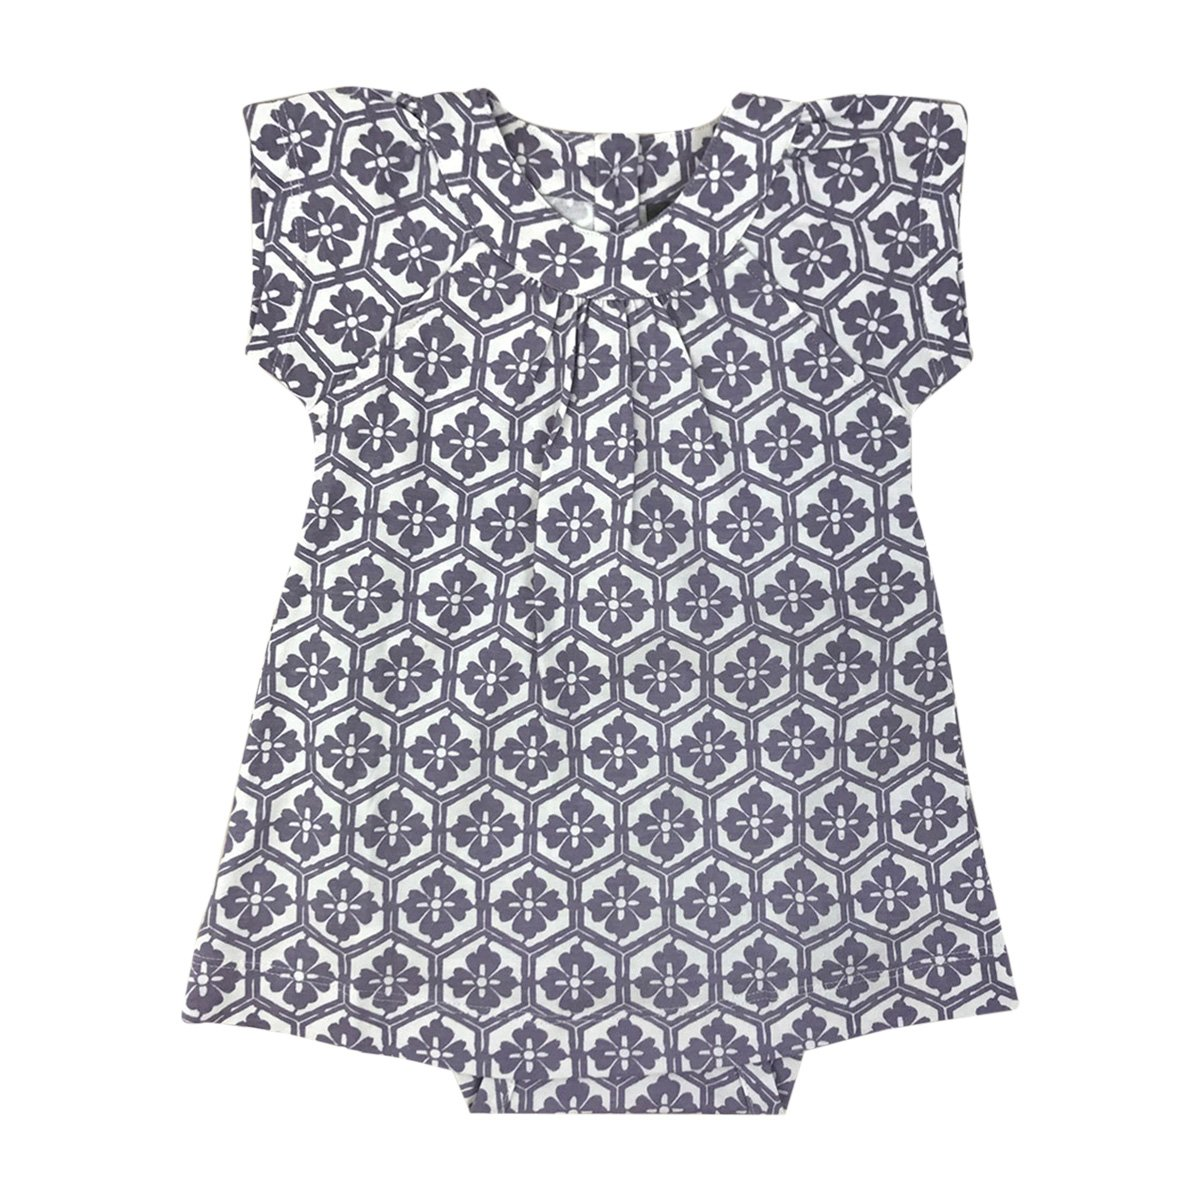 df3d79af8 The Kate Quinn Organics Bell Sleeve Dress Bodysuit is available for your  little one in our beloved essential prints and color palettes to make  dressing baby ...